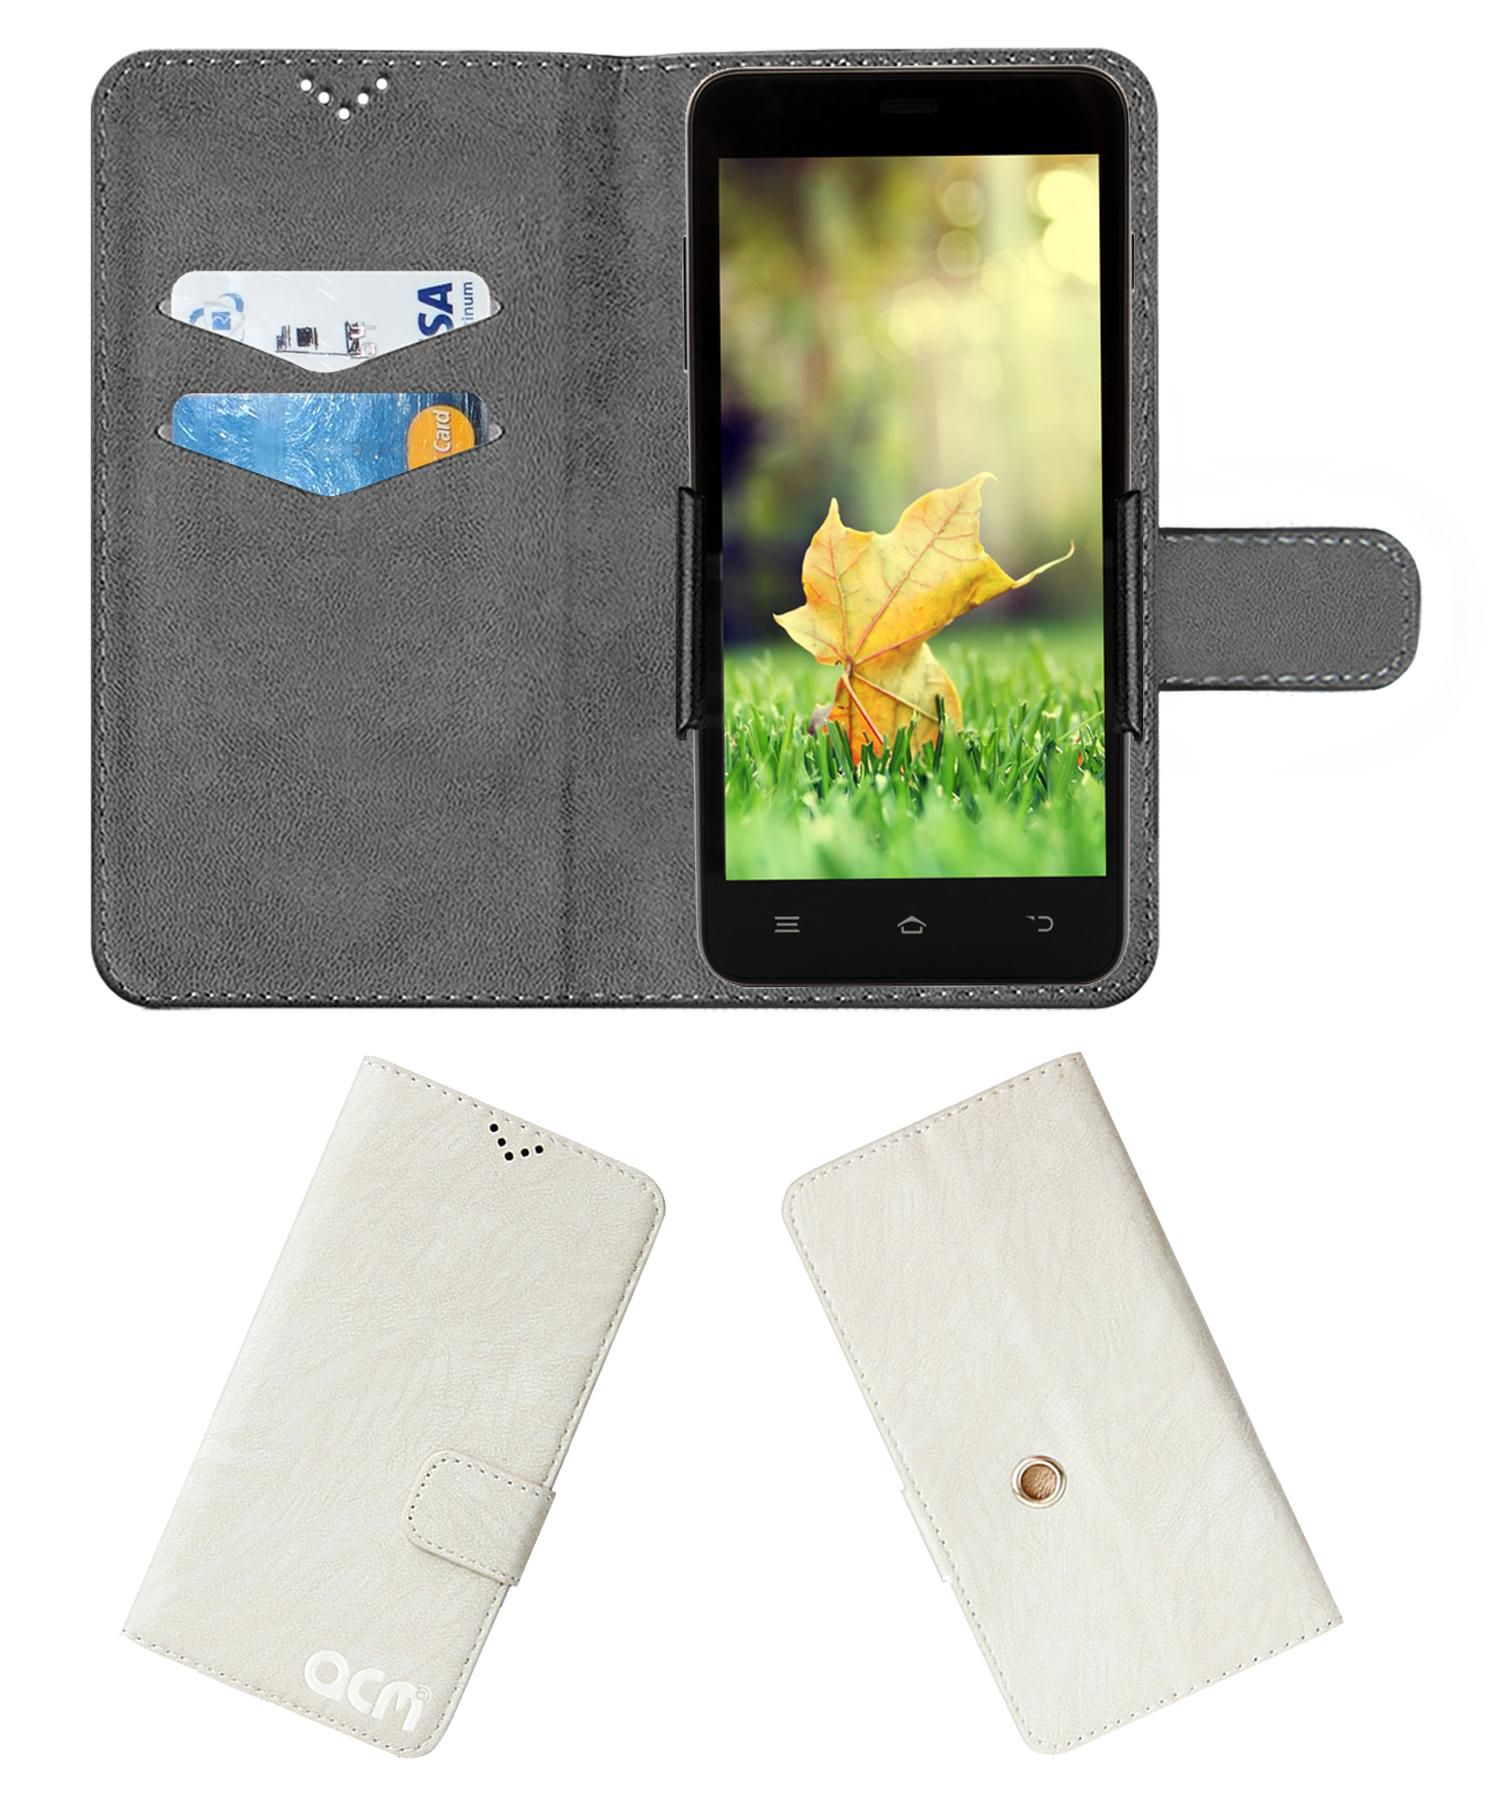 Intex Aqua Sense 5.0 Flip Cover by ACM - White Clip holder to hold your mobile securely